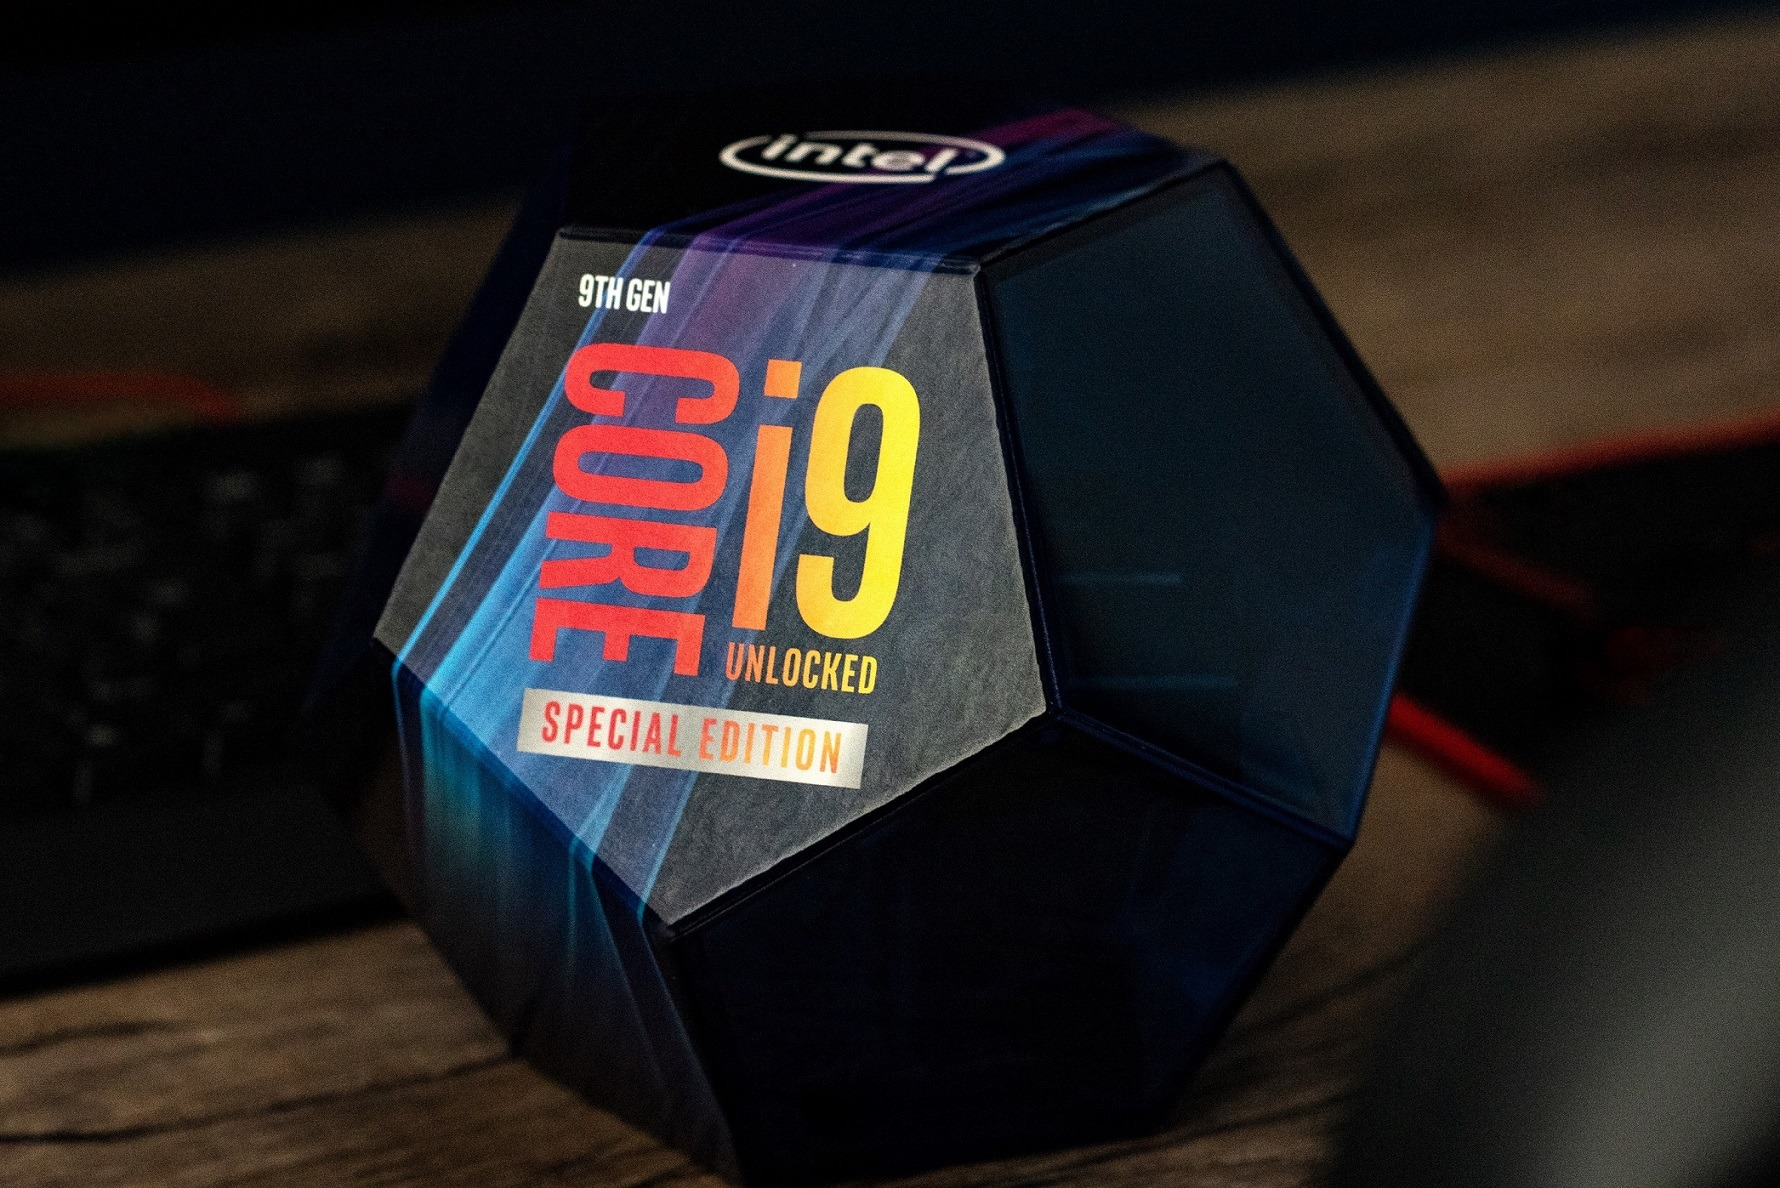 191029_9th Gen Intel Core i9-9900KS Special Edition Processor Available Oct 30th_Thumbnail&Contents_1